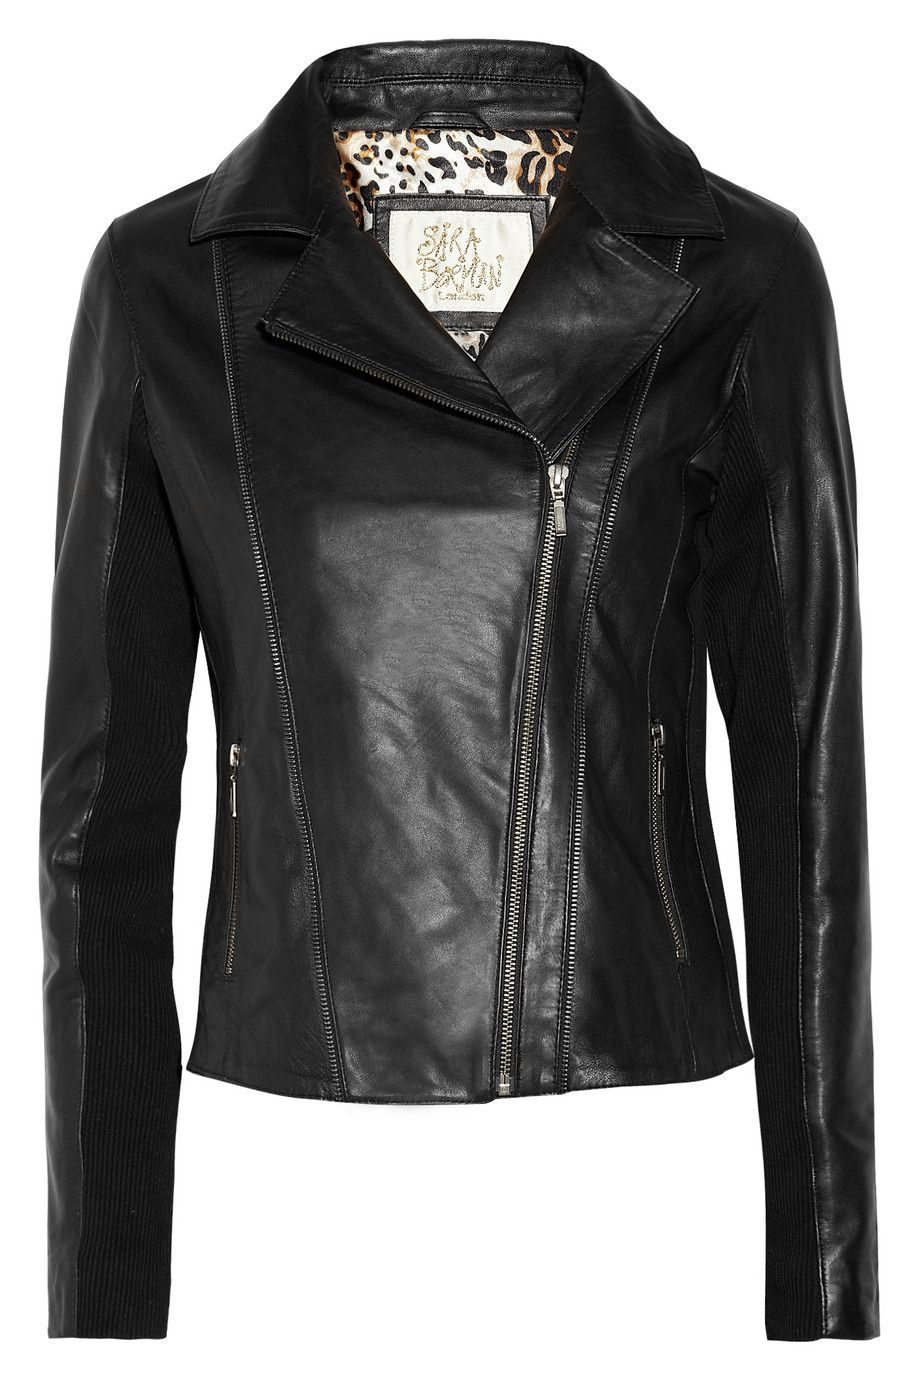 Want this. Rudy zipdetailed leather jacket by Sara Berman